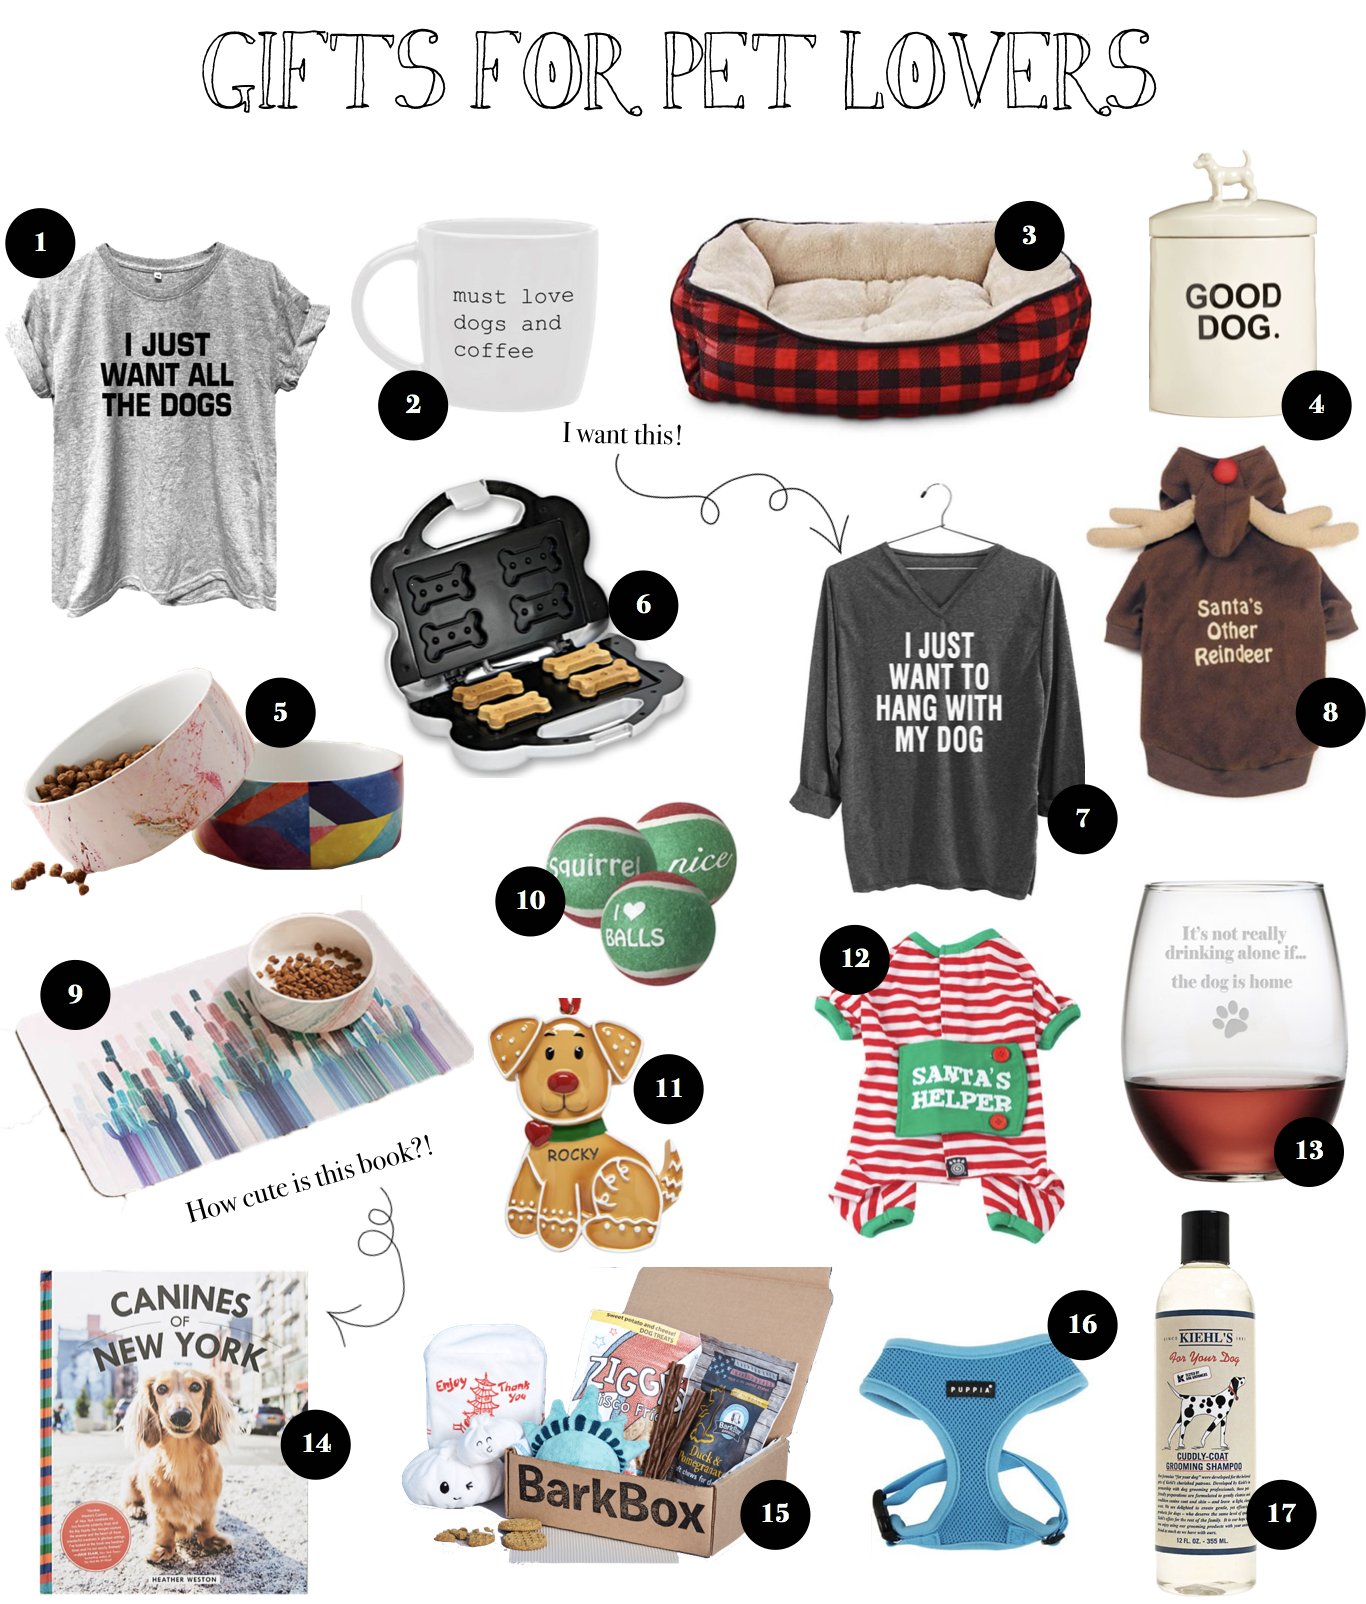 12 Gift Guides of 2017 Gift ideas for pet lovers, accessories, toys, shirts, and more! on fashion blog daily dose of charm by lauren lindmark